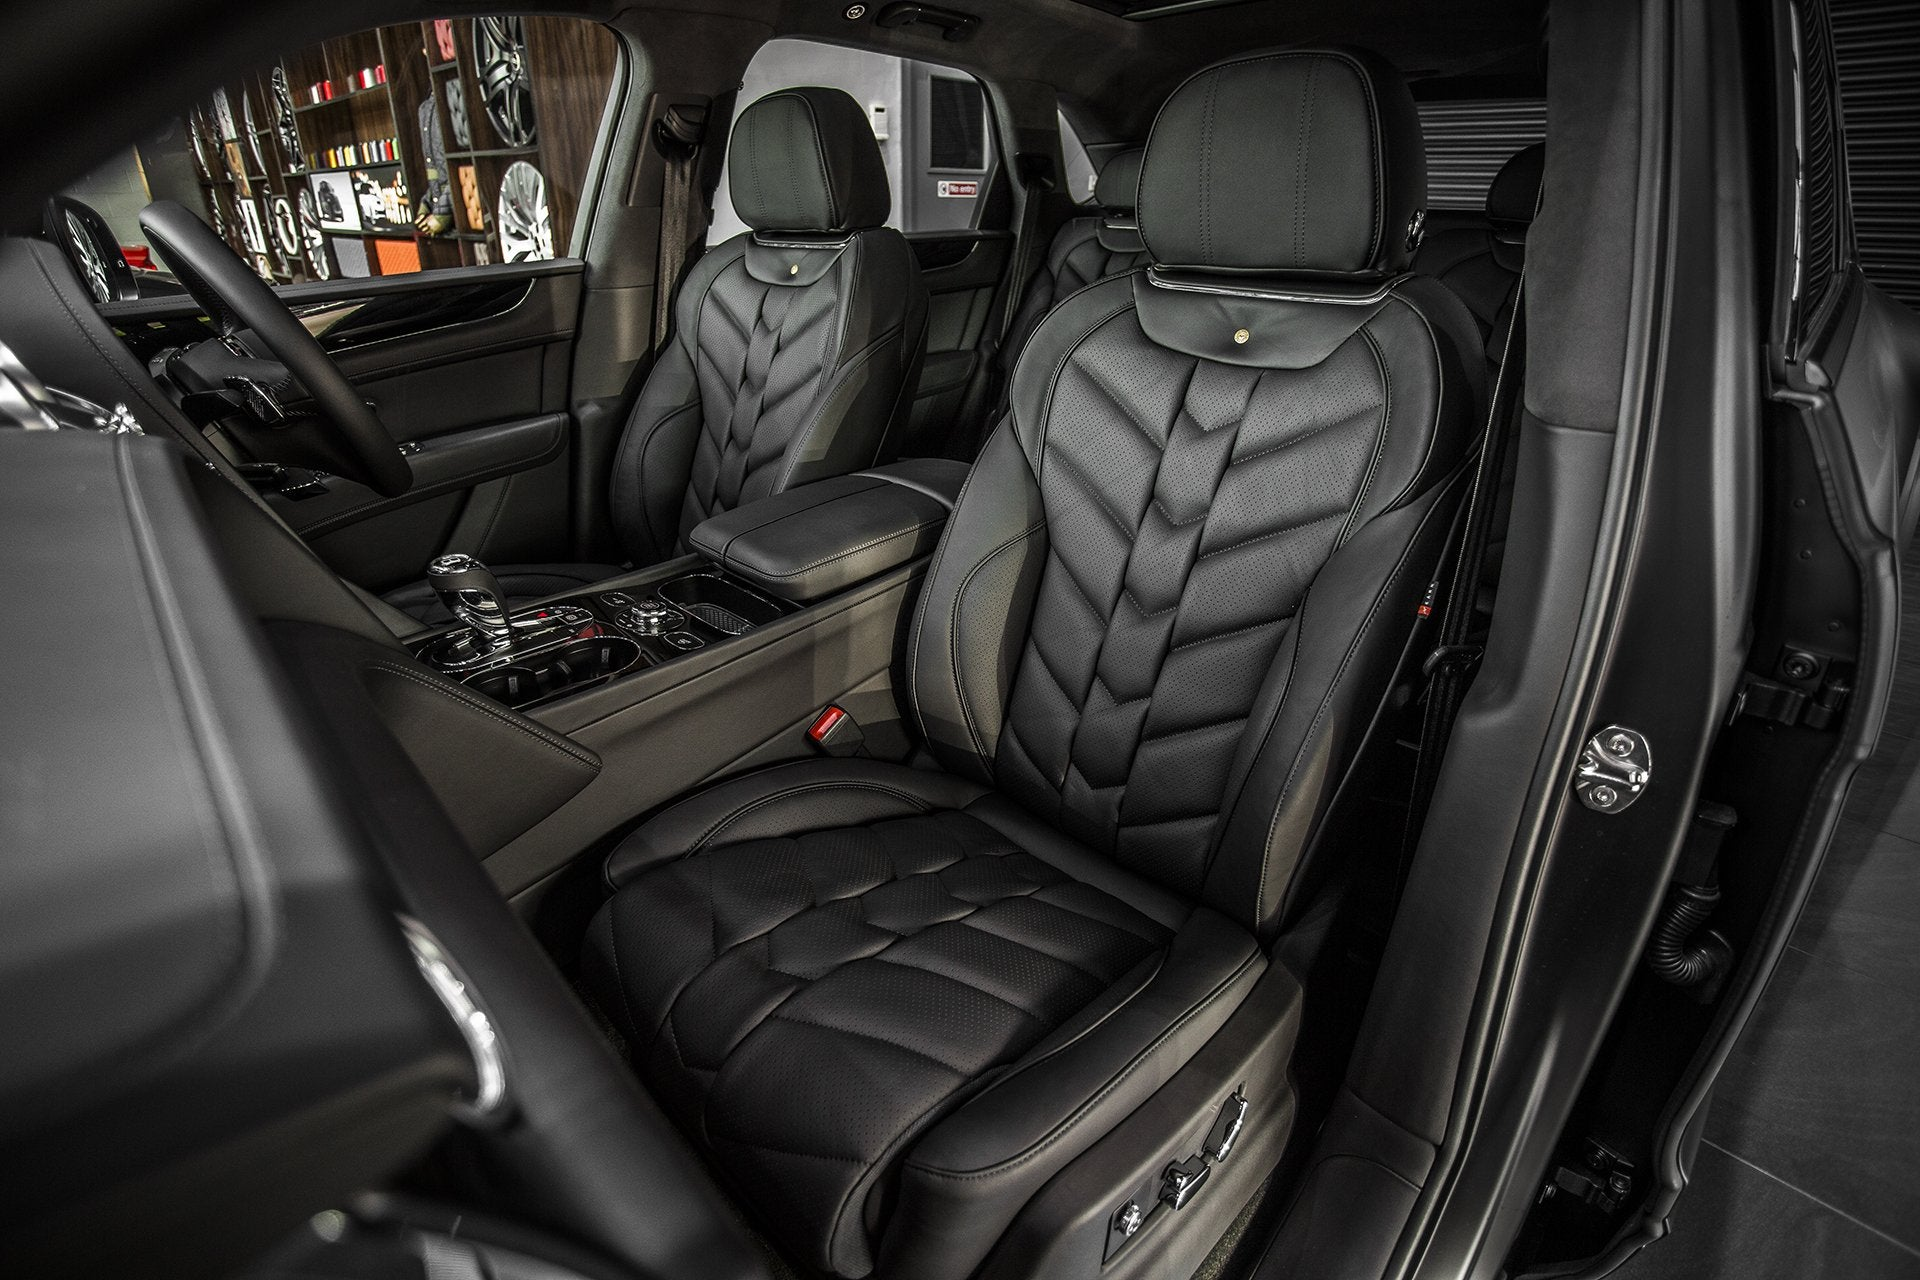 Bentley Bentayga (2016-Present) Leather Interior - 5 Seats by Kahn - Image 1553